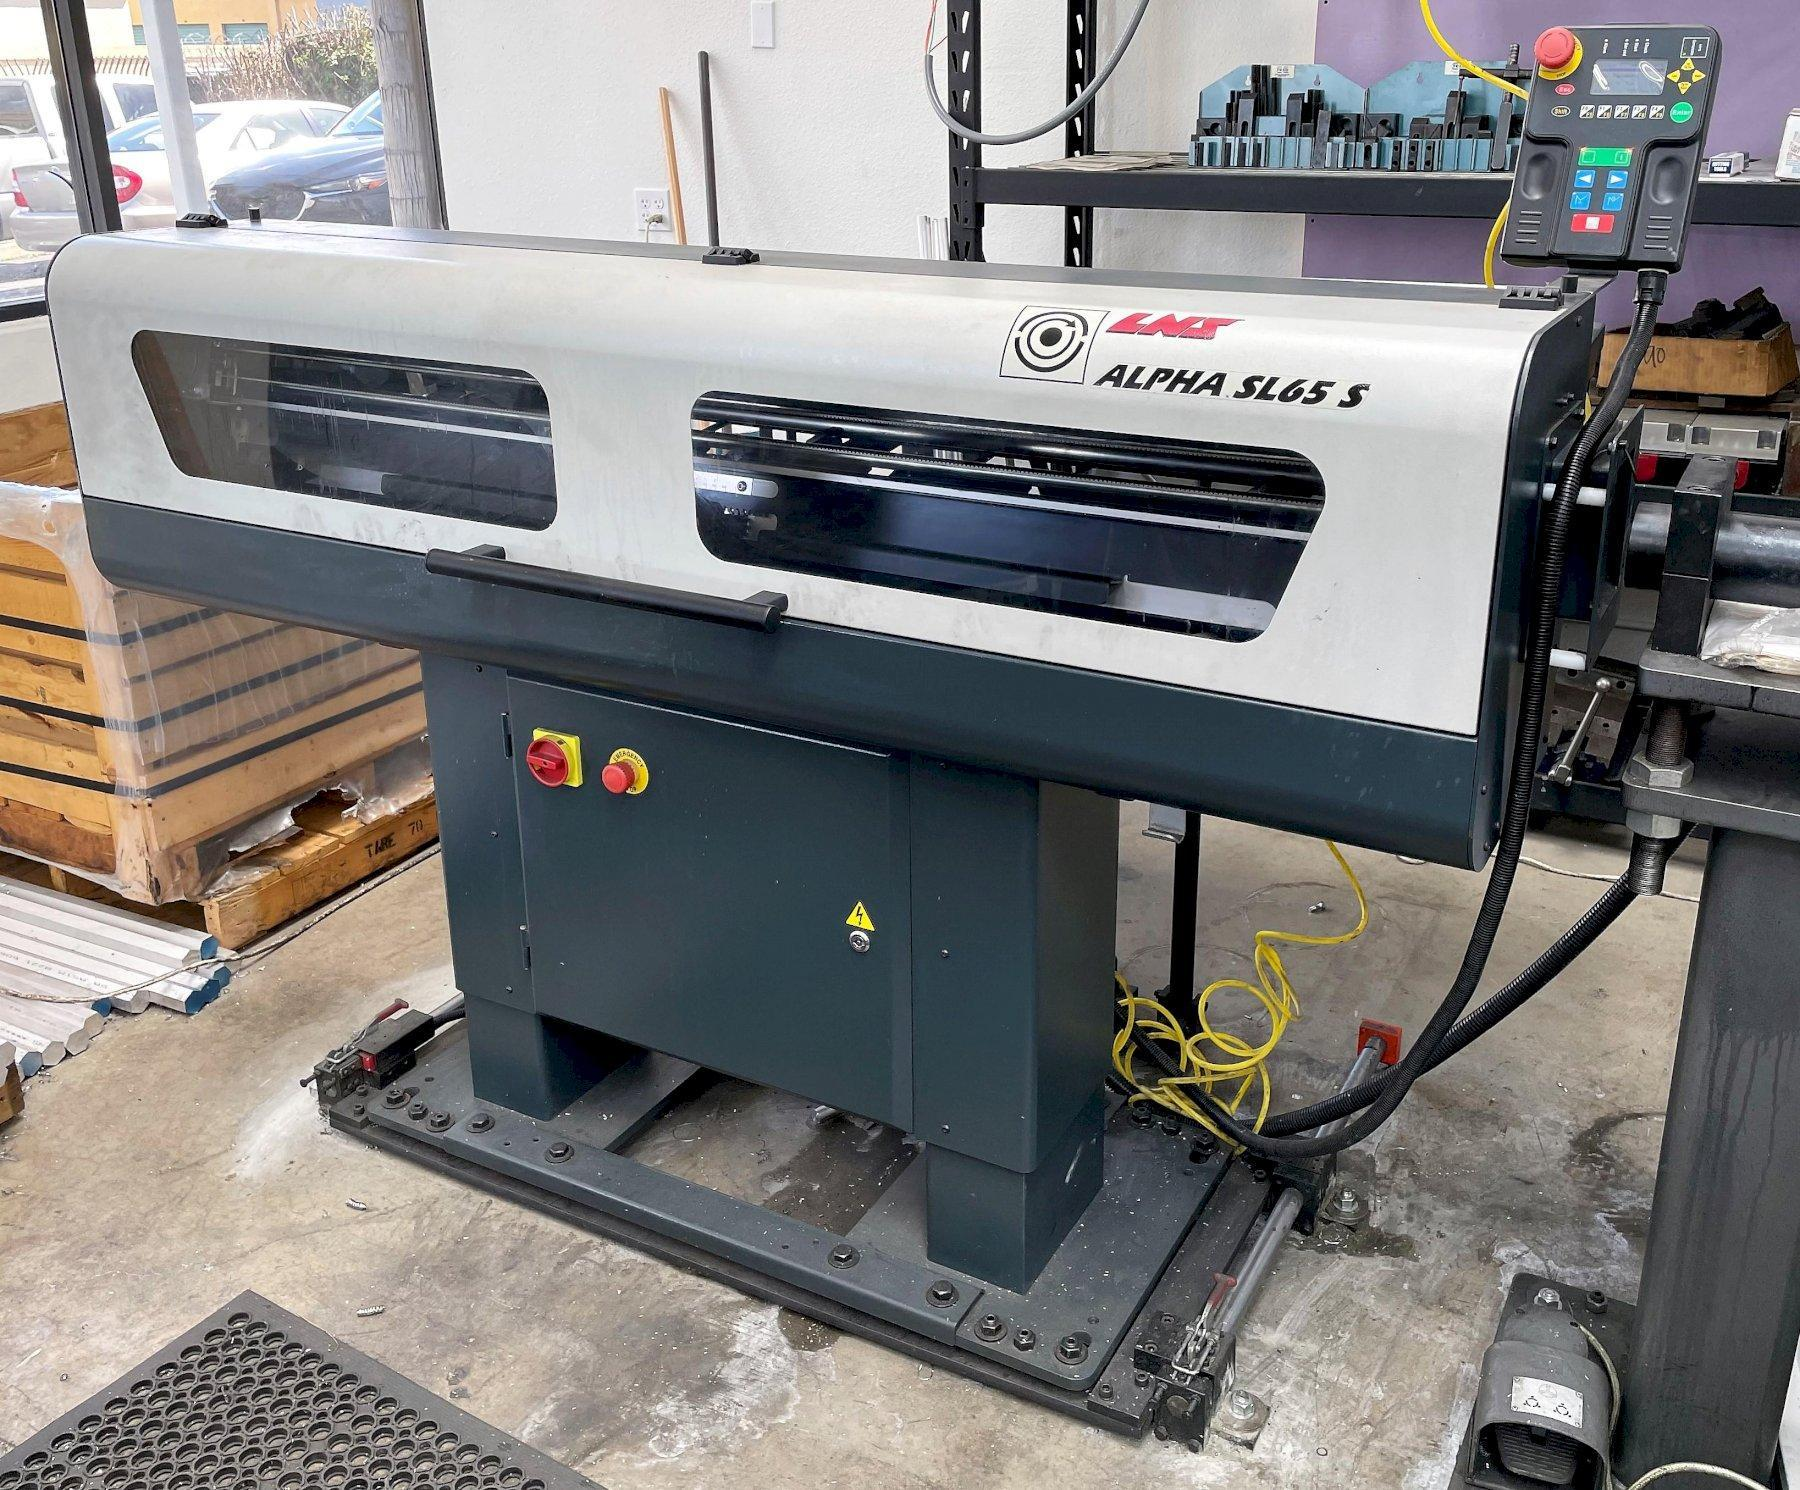 Eurotech Rapido B436-Y2 CNC Turning Center 2016 with: Two Spindles and Two Turrets, Y-Axis on Both Turrets, HPC, Parts Catcher, Chip Conveyor, and Bar Feeder.